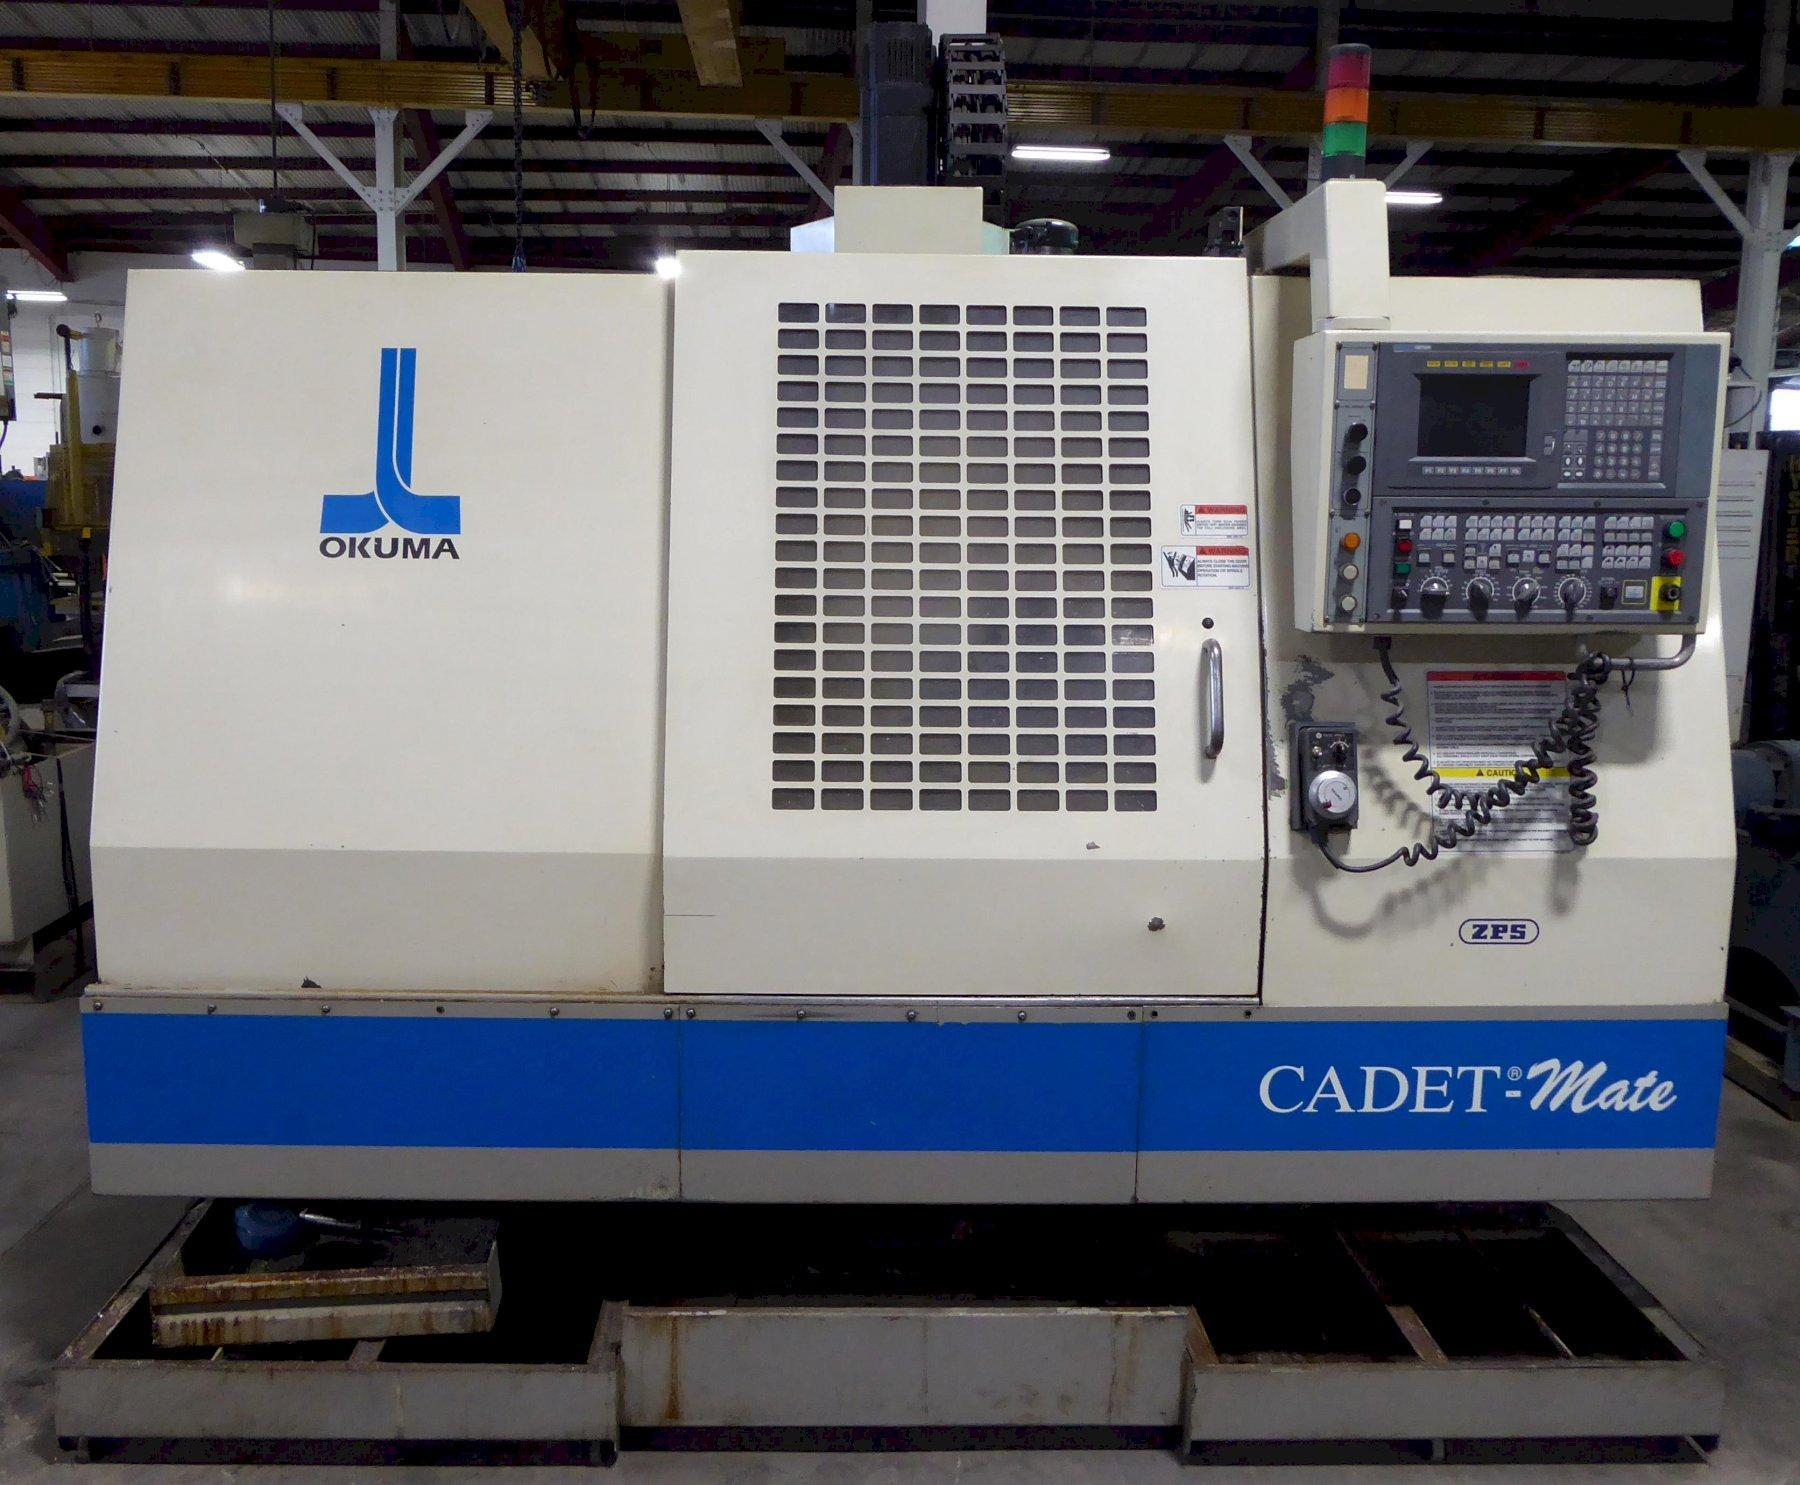 Okuma Cadet Mate Vertical Machining Center, 40″X, 20″Y, 20″Z, 8000 RPM, OSP 700M Control